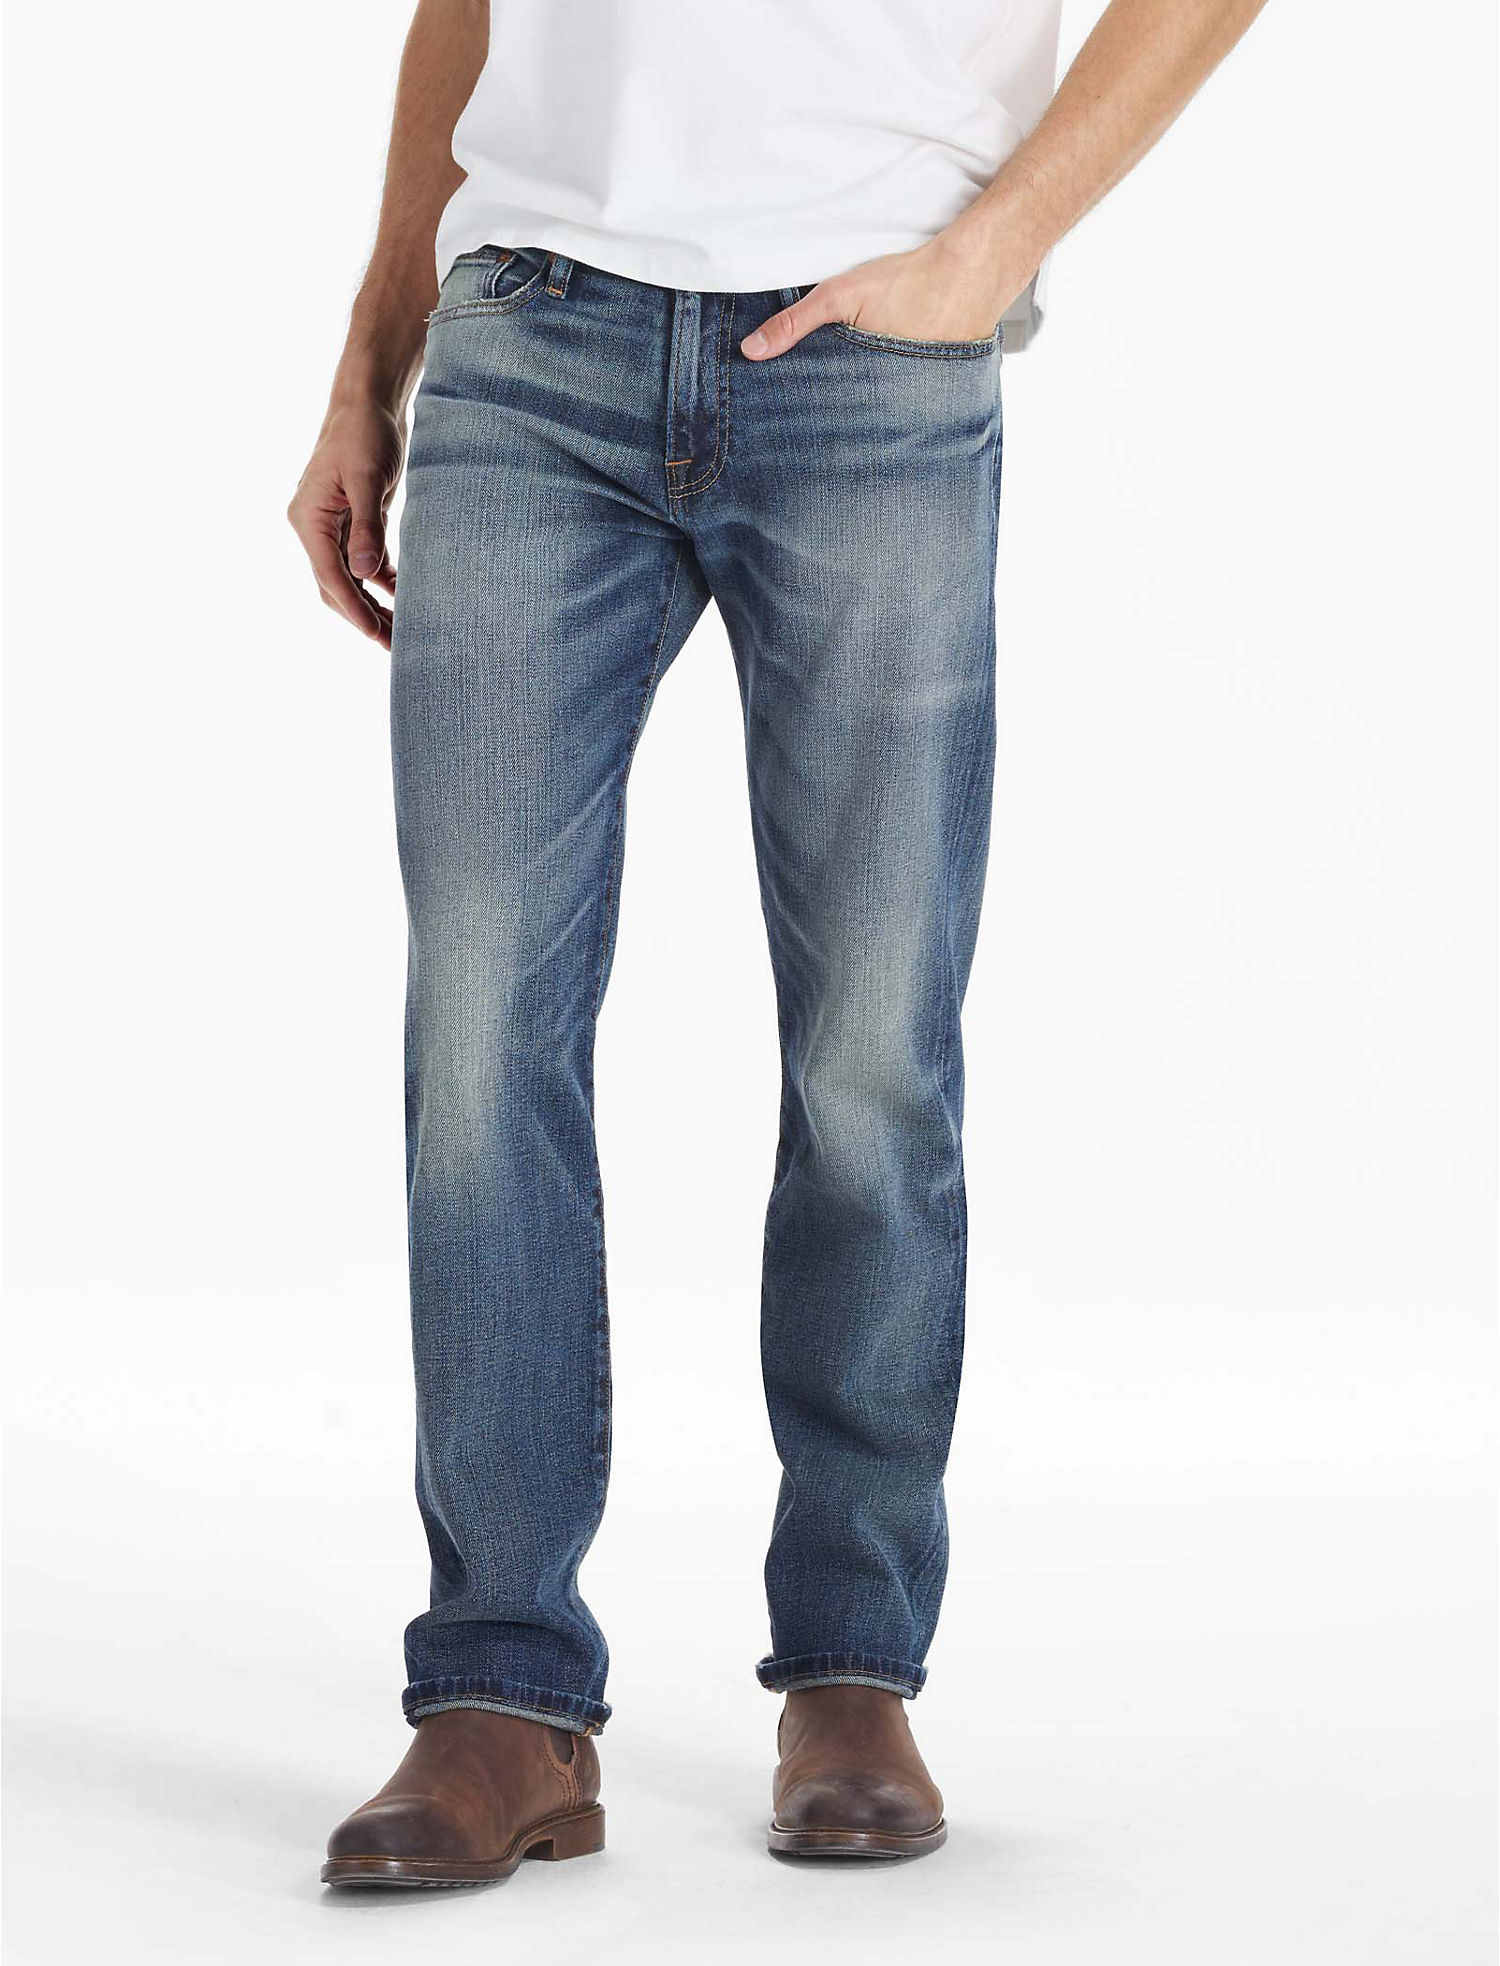 Lucky Brand Sale: 40% off + Extra $25 off $100+